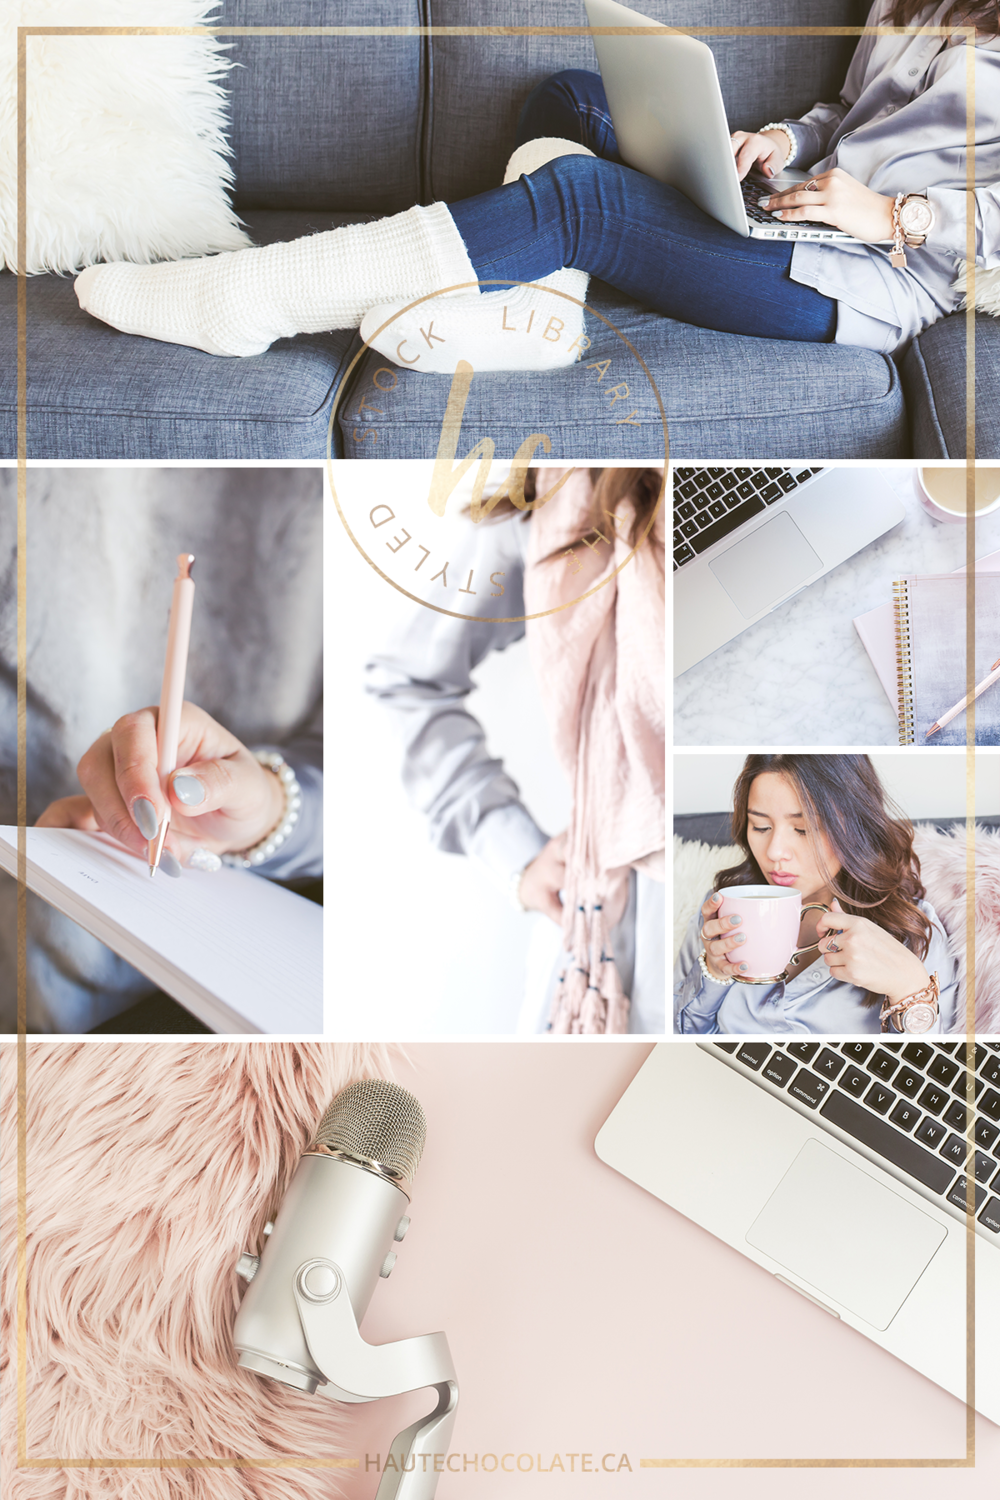 pink and grey feminine styled stock photos featuring lifestyle stock images with a female model working from home in cozy socks with laptop and tea in her hand